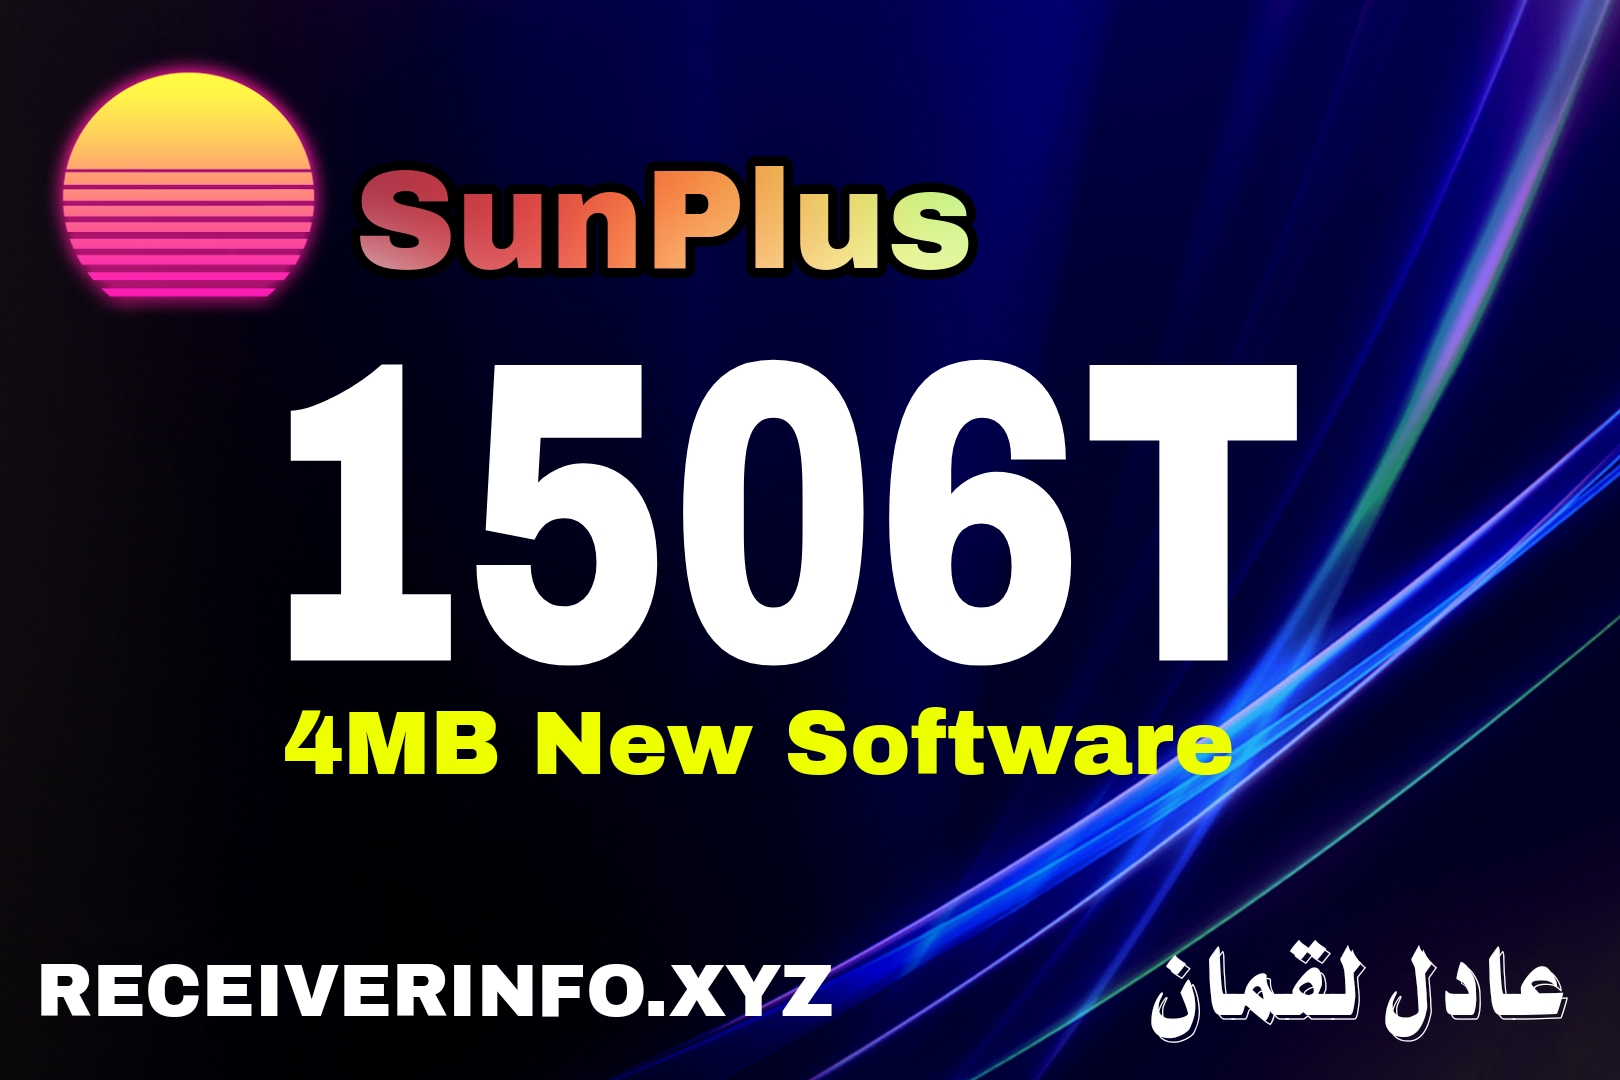 Sunplus Chipset 1506t Hd Receiver All Software With Full Specification